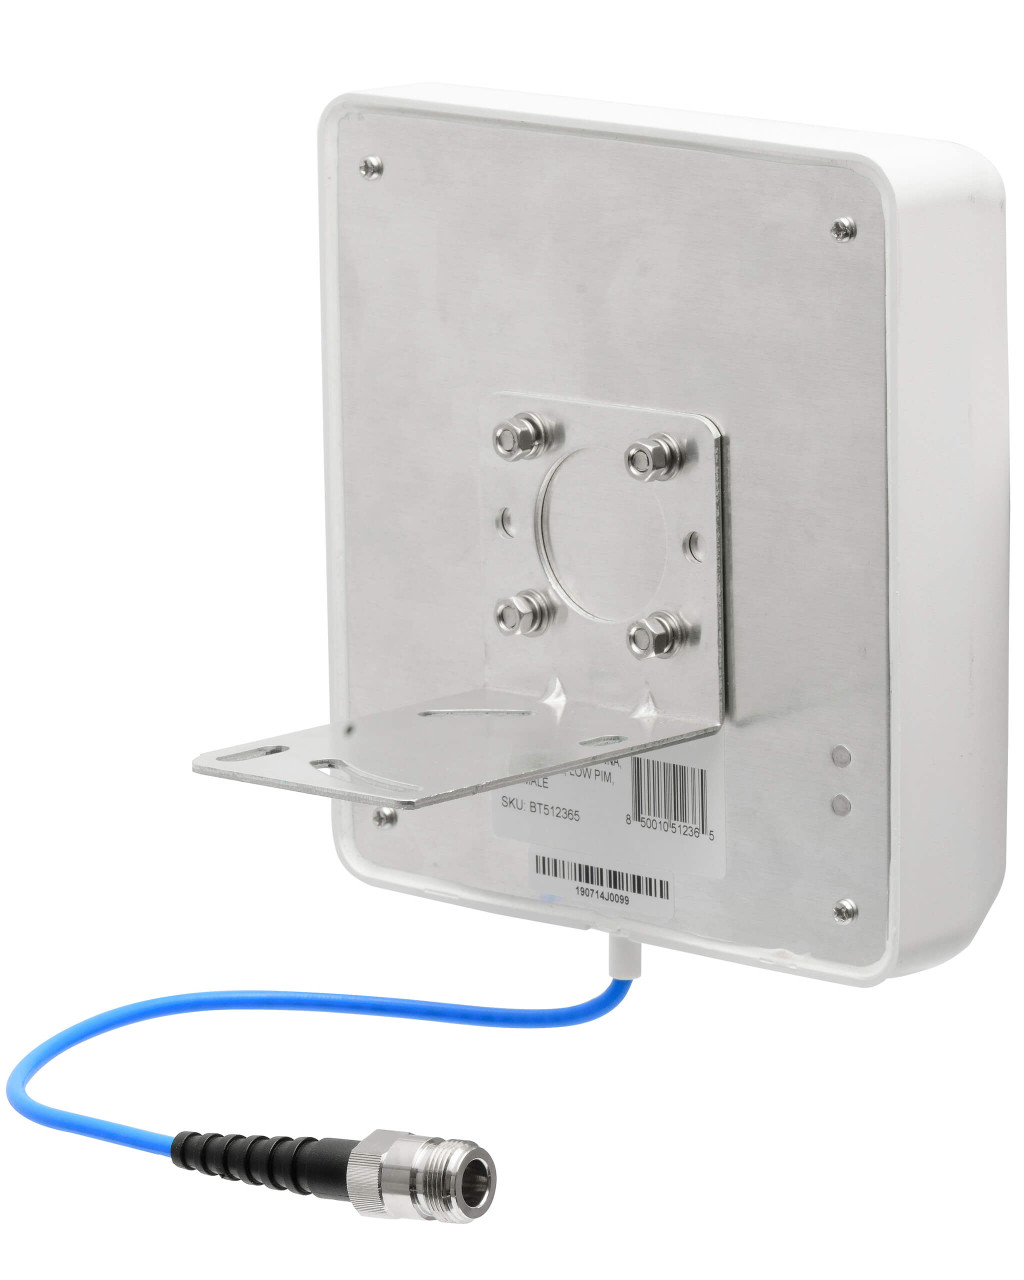 The Outdoor Board  Wall Mount Antenna back angle